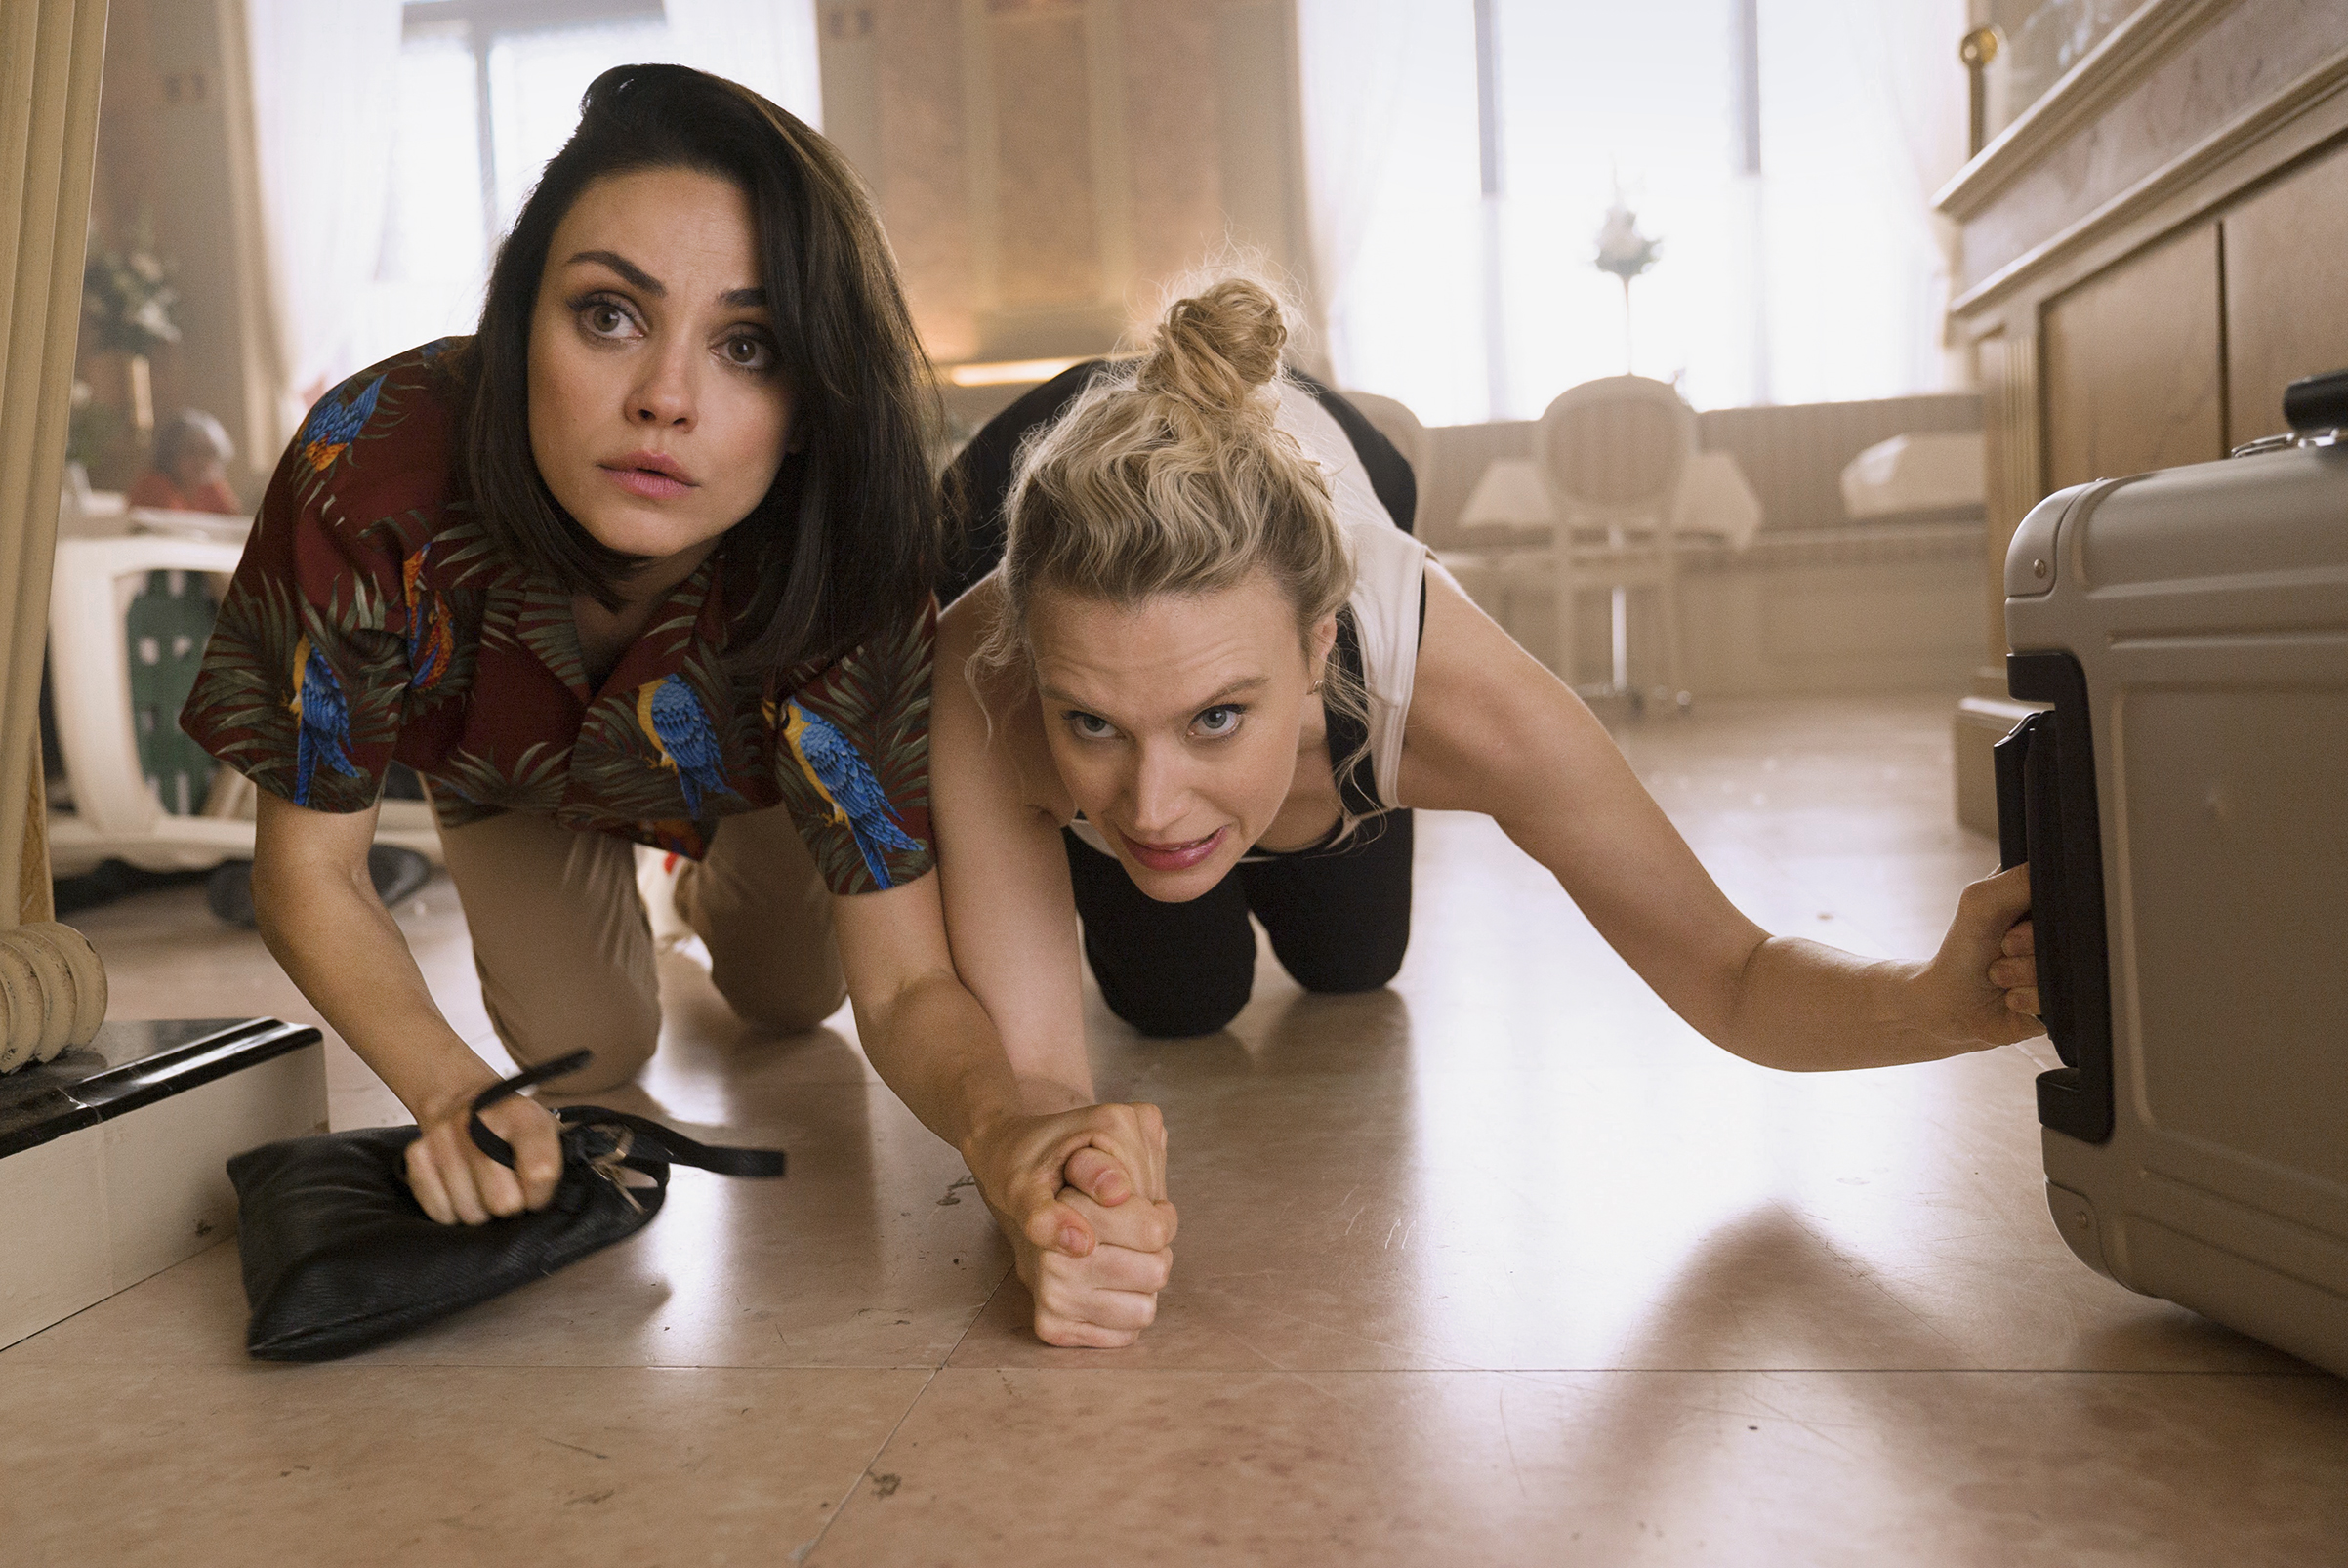 Mila Kunis and Kate McKinnon run for their lives in The Spy Who Dumped Me